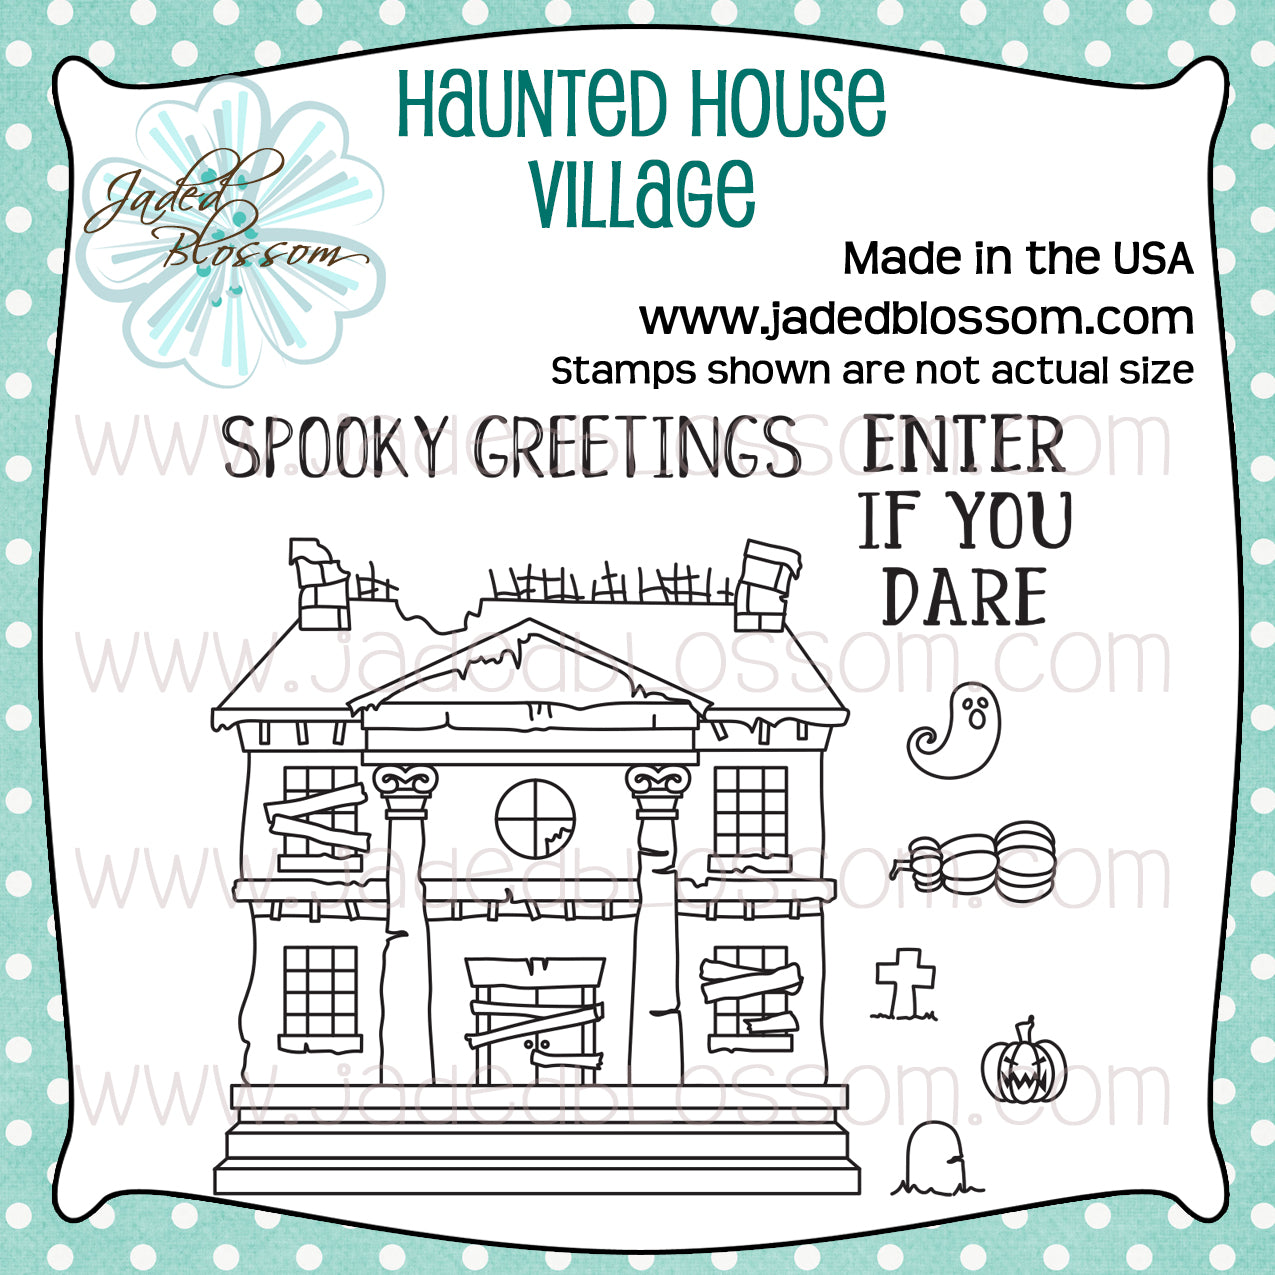 Haunted House Village